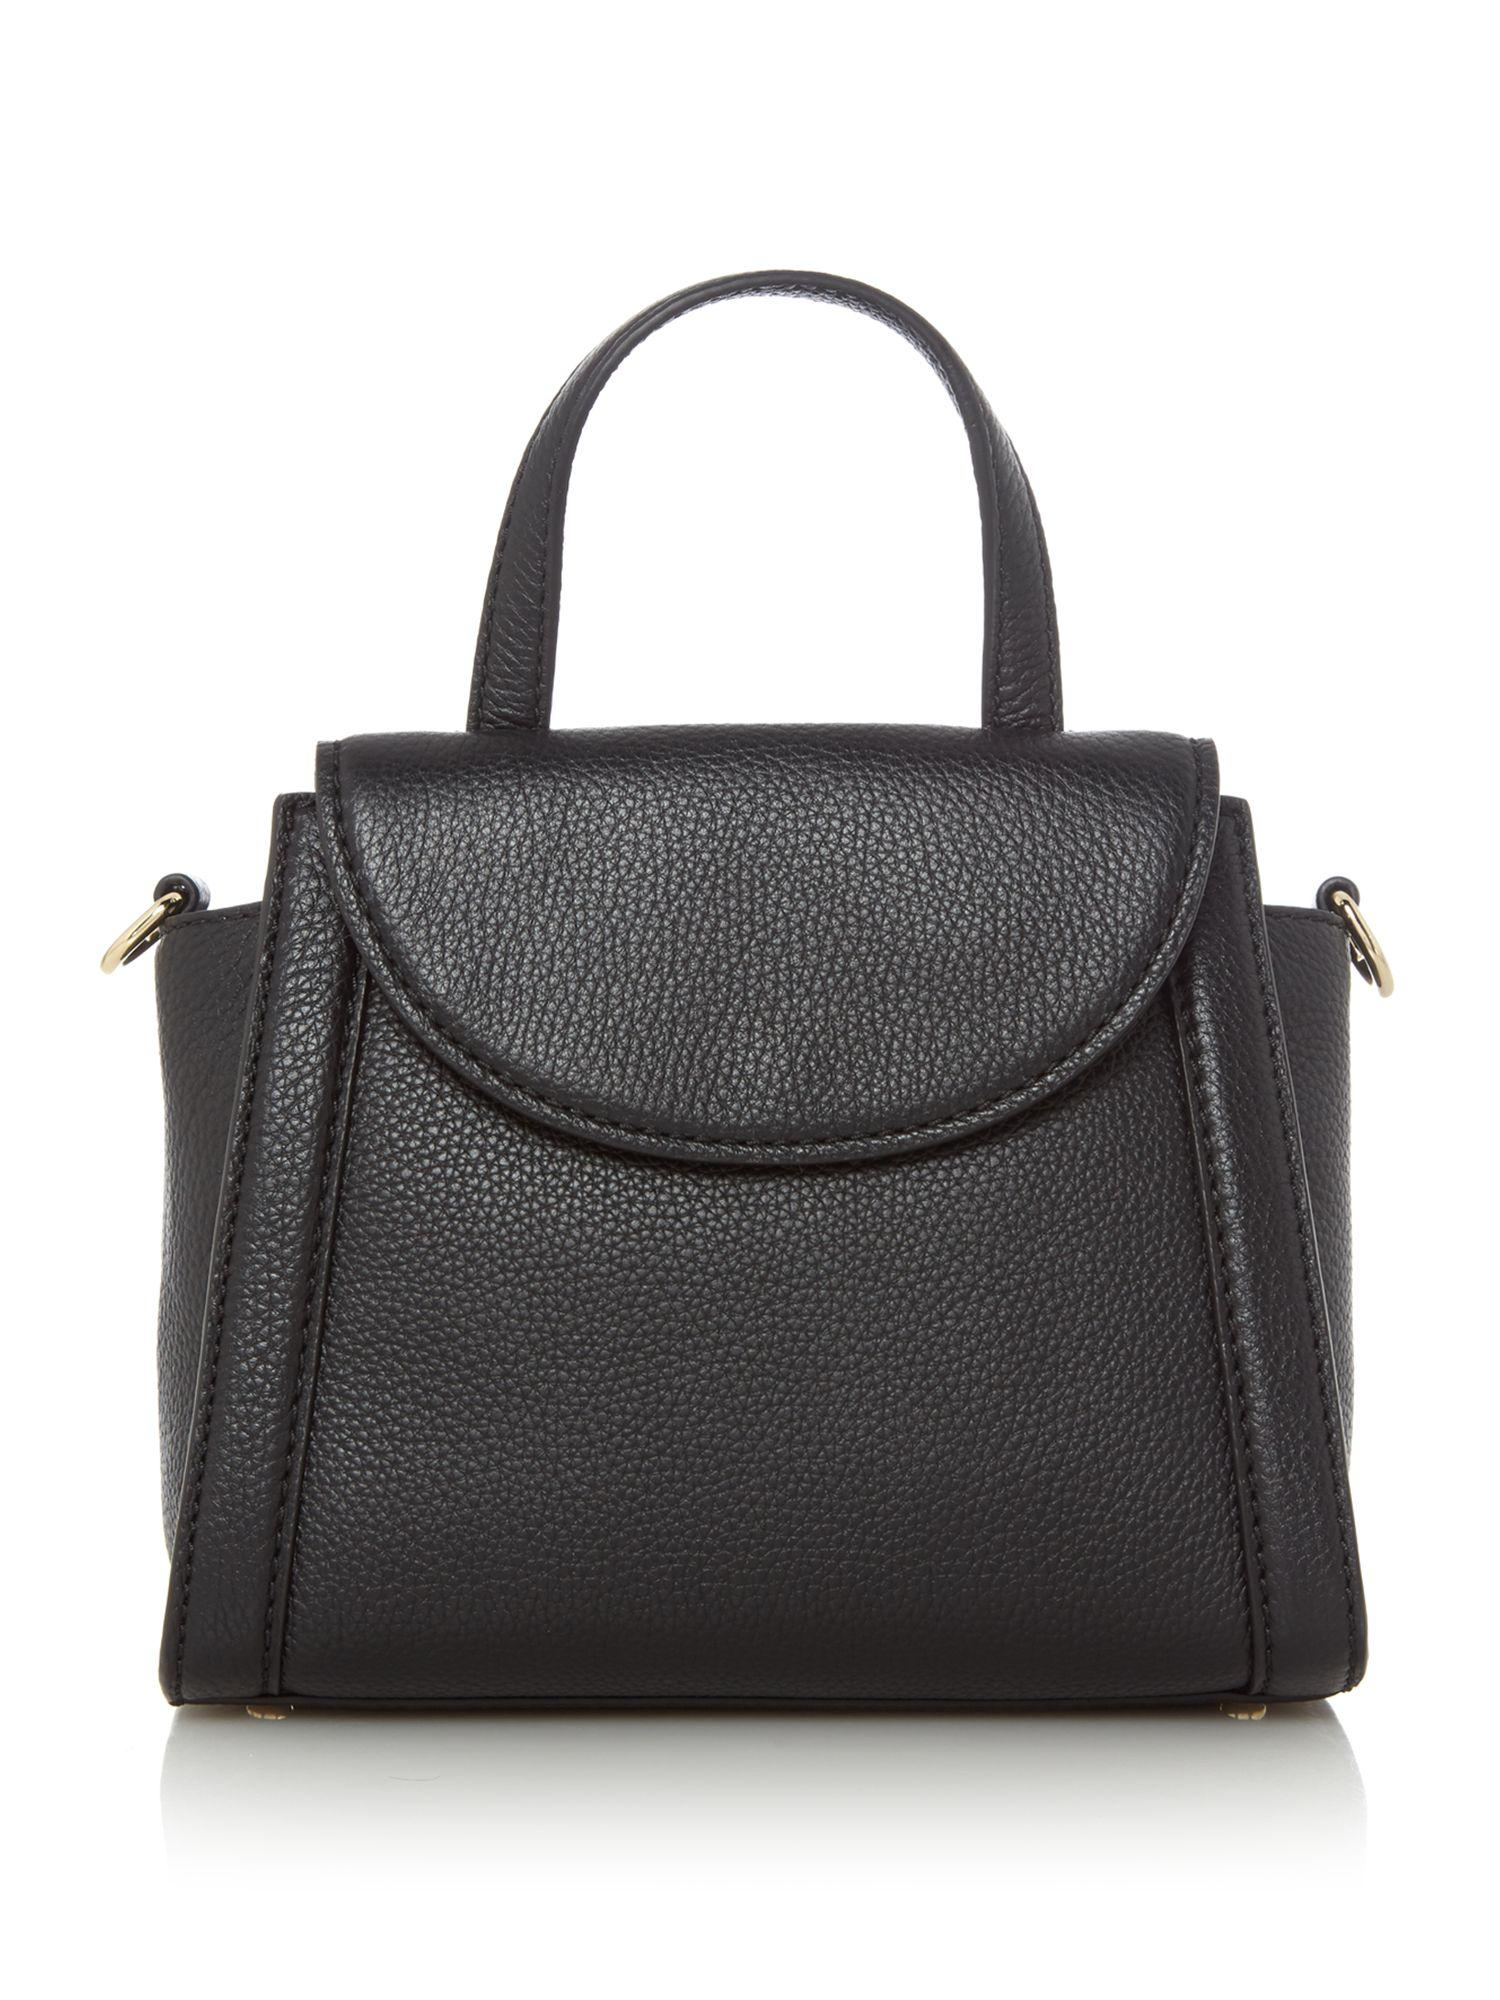 Kate Spade Leather Cobble Hill Small Adrian Tote Bag in Black